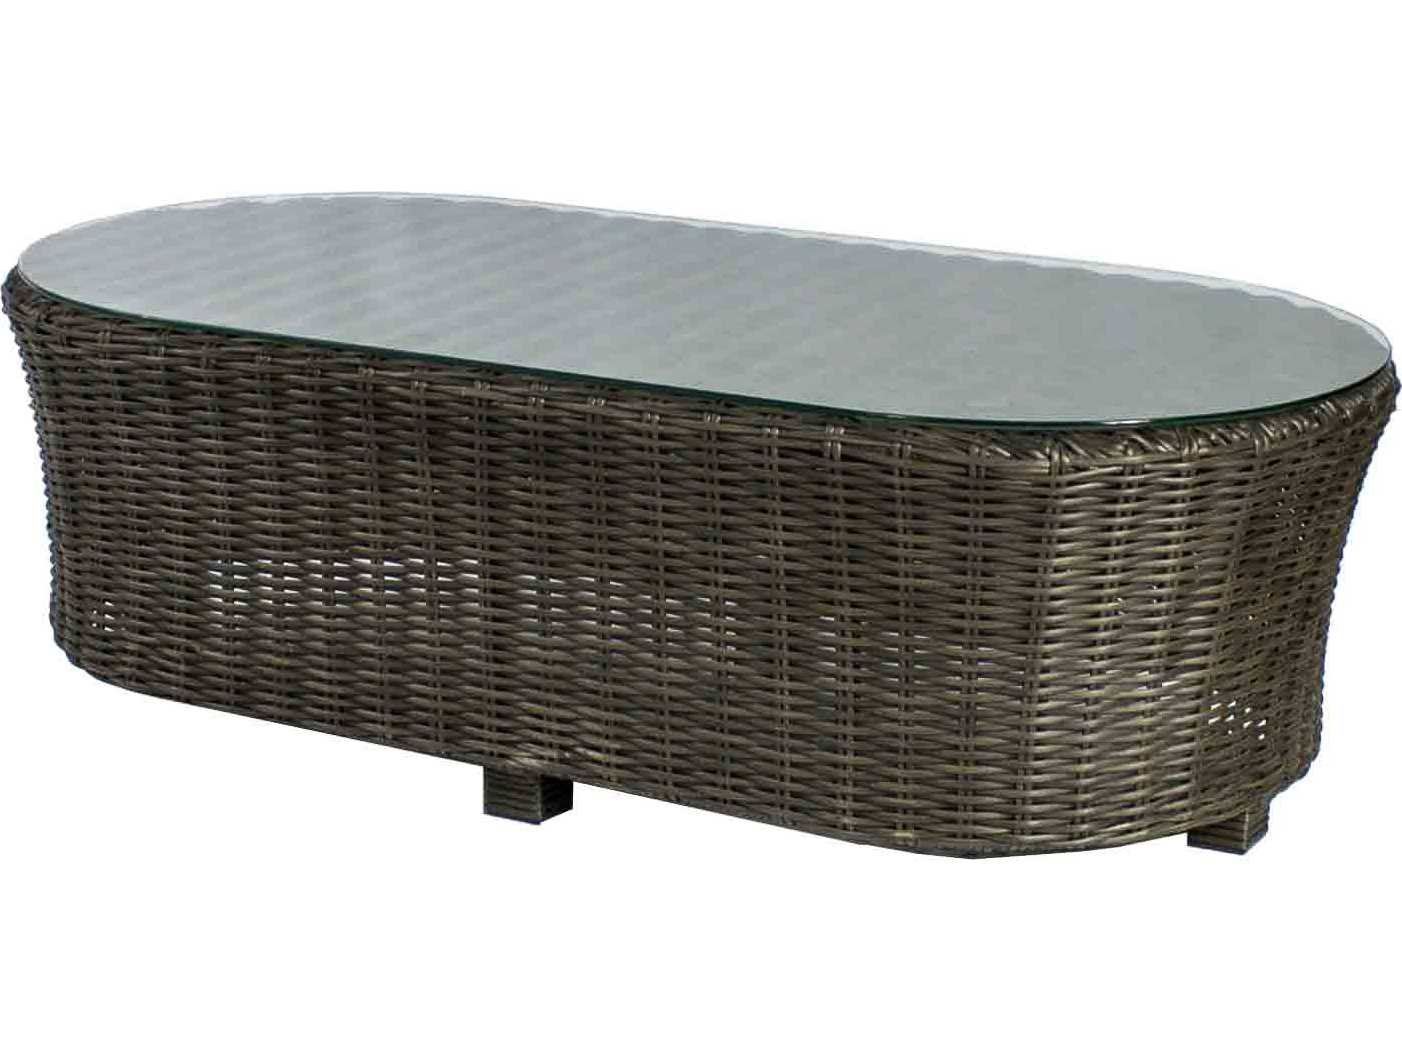 Source Outdoor Furniture Wellington Wicker 48 X 24 Oval Coffee Table So 2019 331